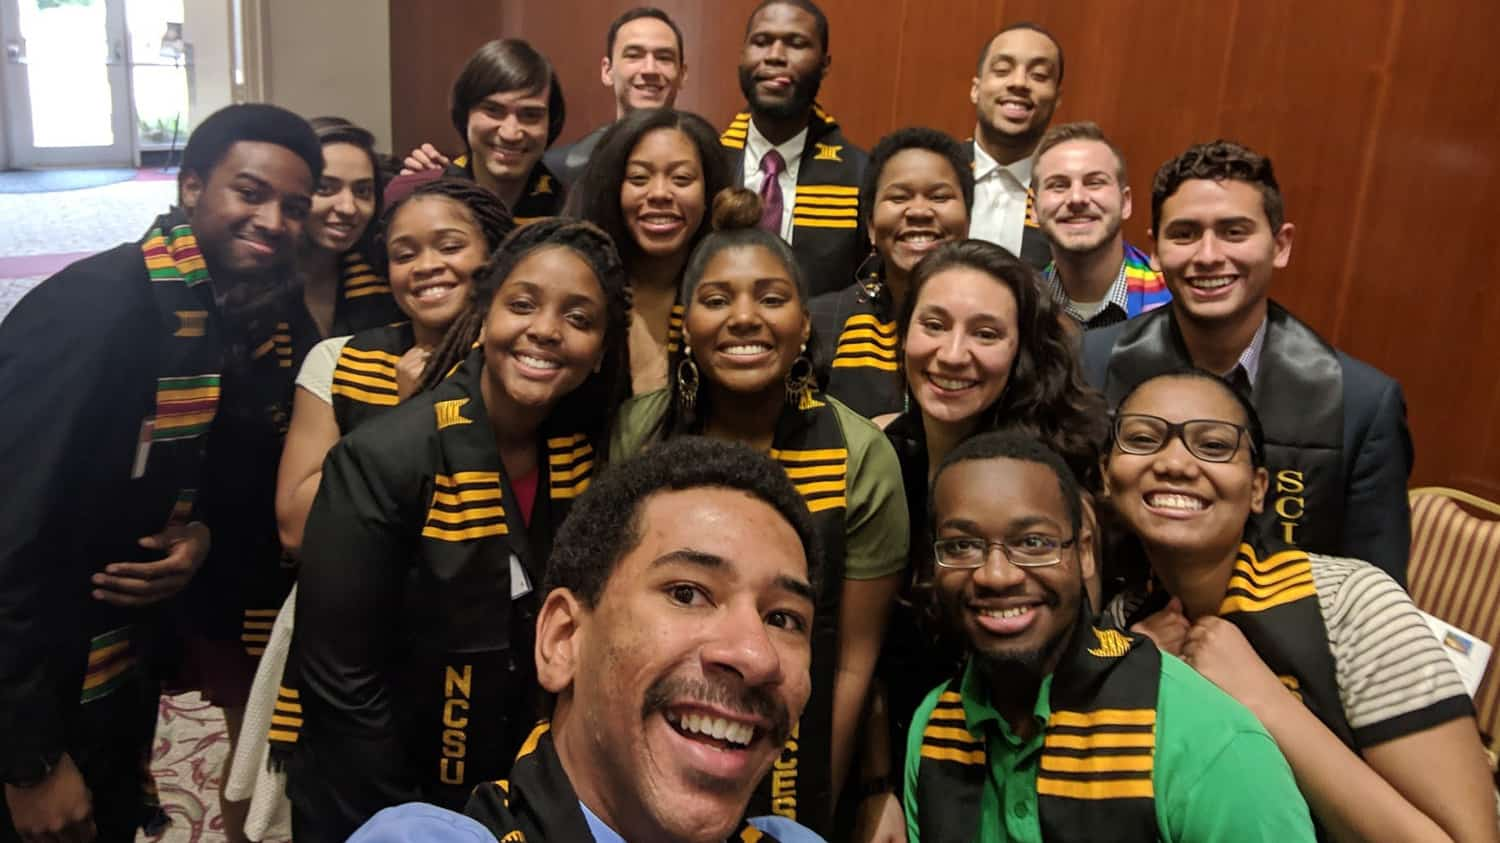 A group of diverse students pose for a selfie